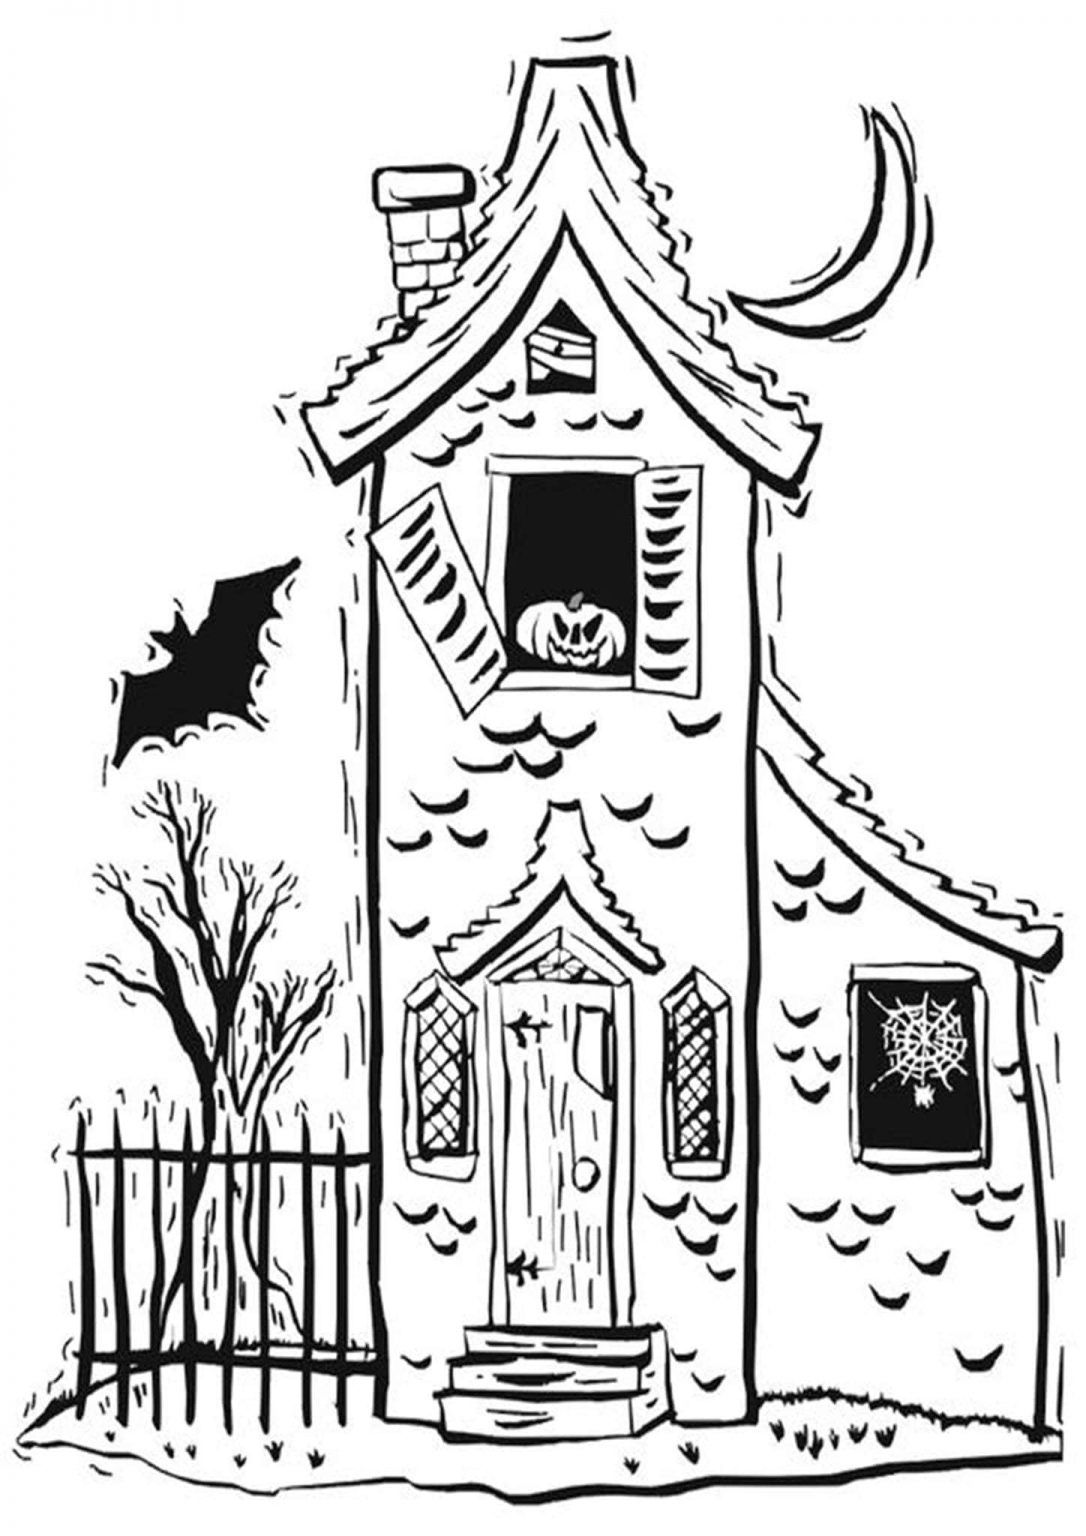 16++ Haunted house halloween coloring pages ideas in 2021